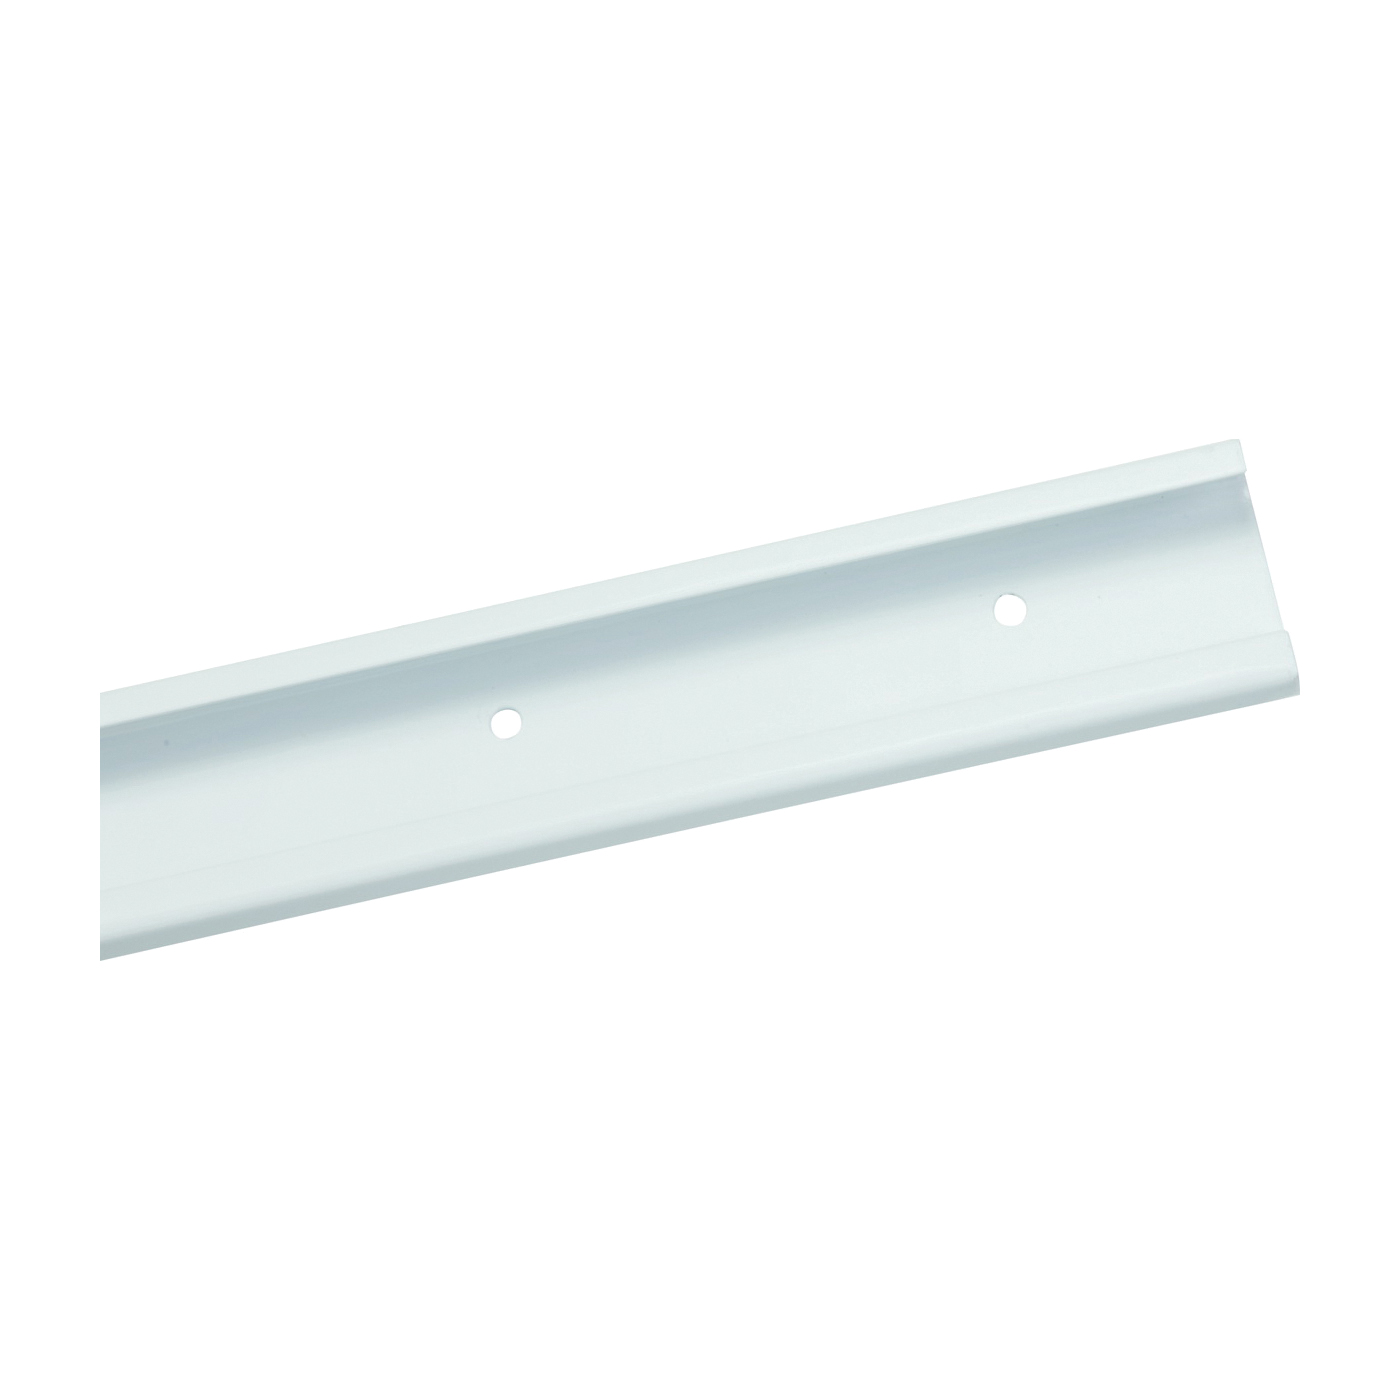 Picture of ClosetMaid 2826 Shelf Hang Track, 2 in W, 40 in H, Steel